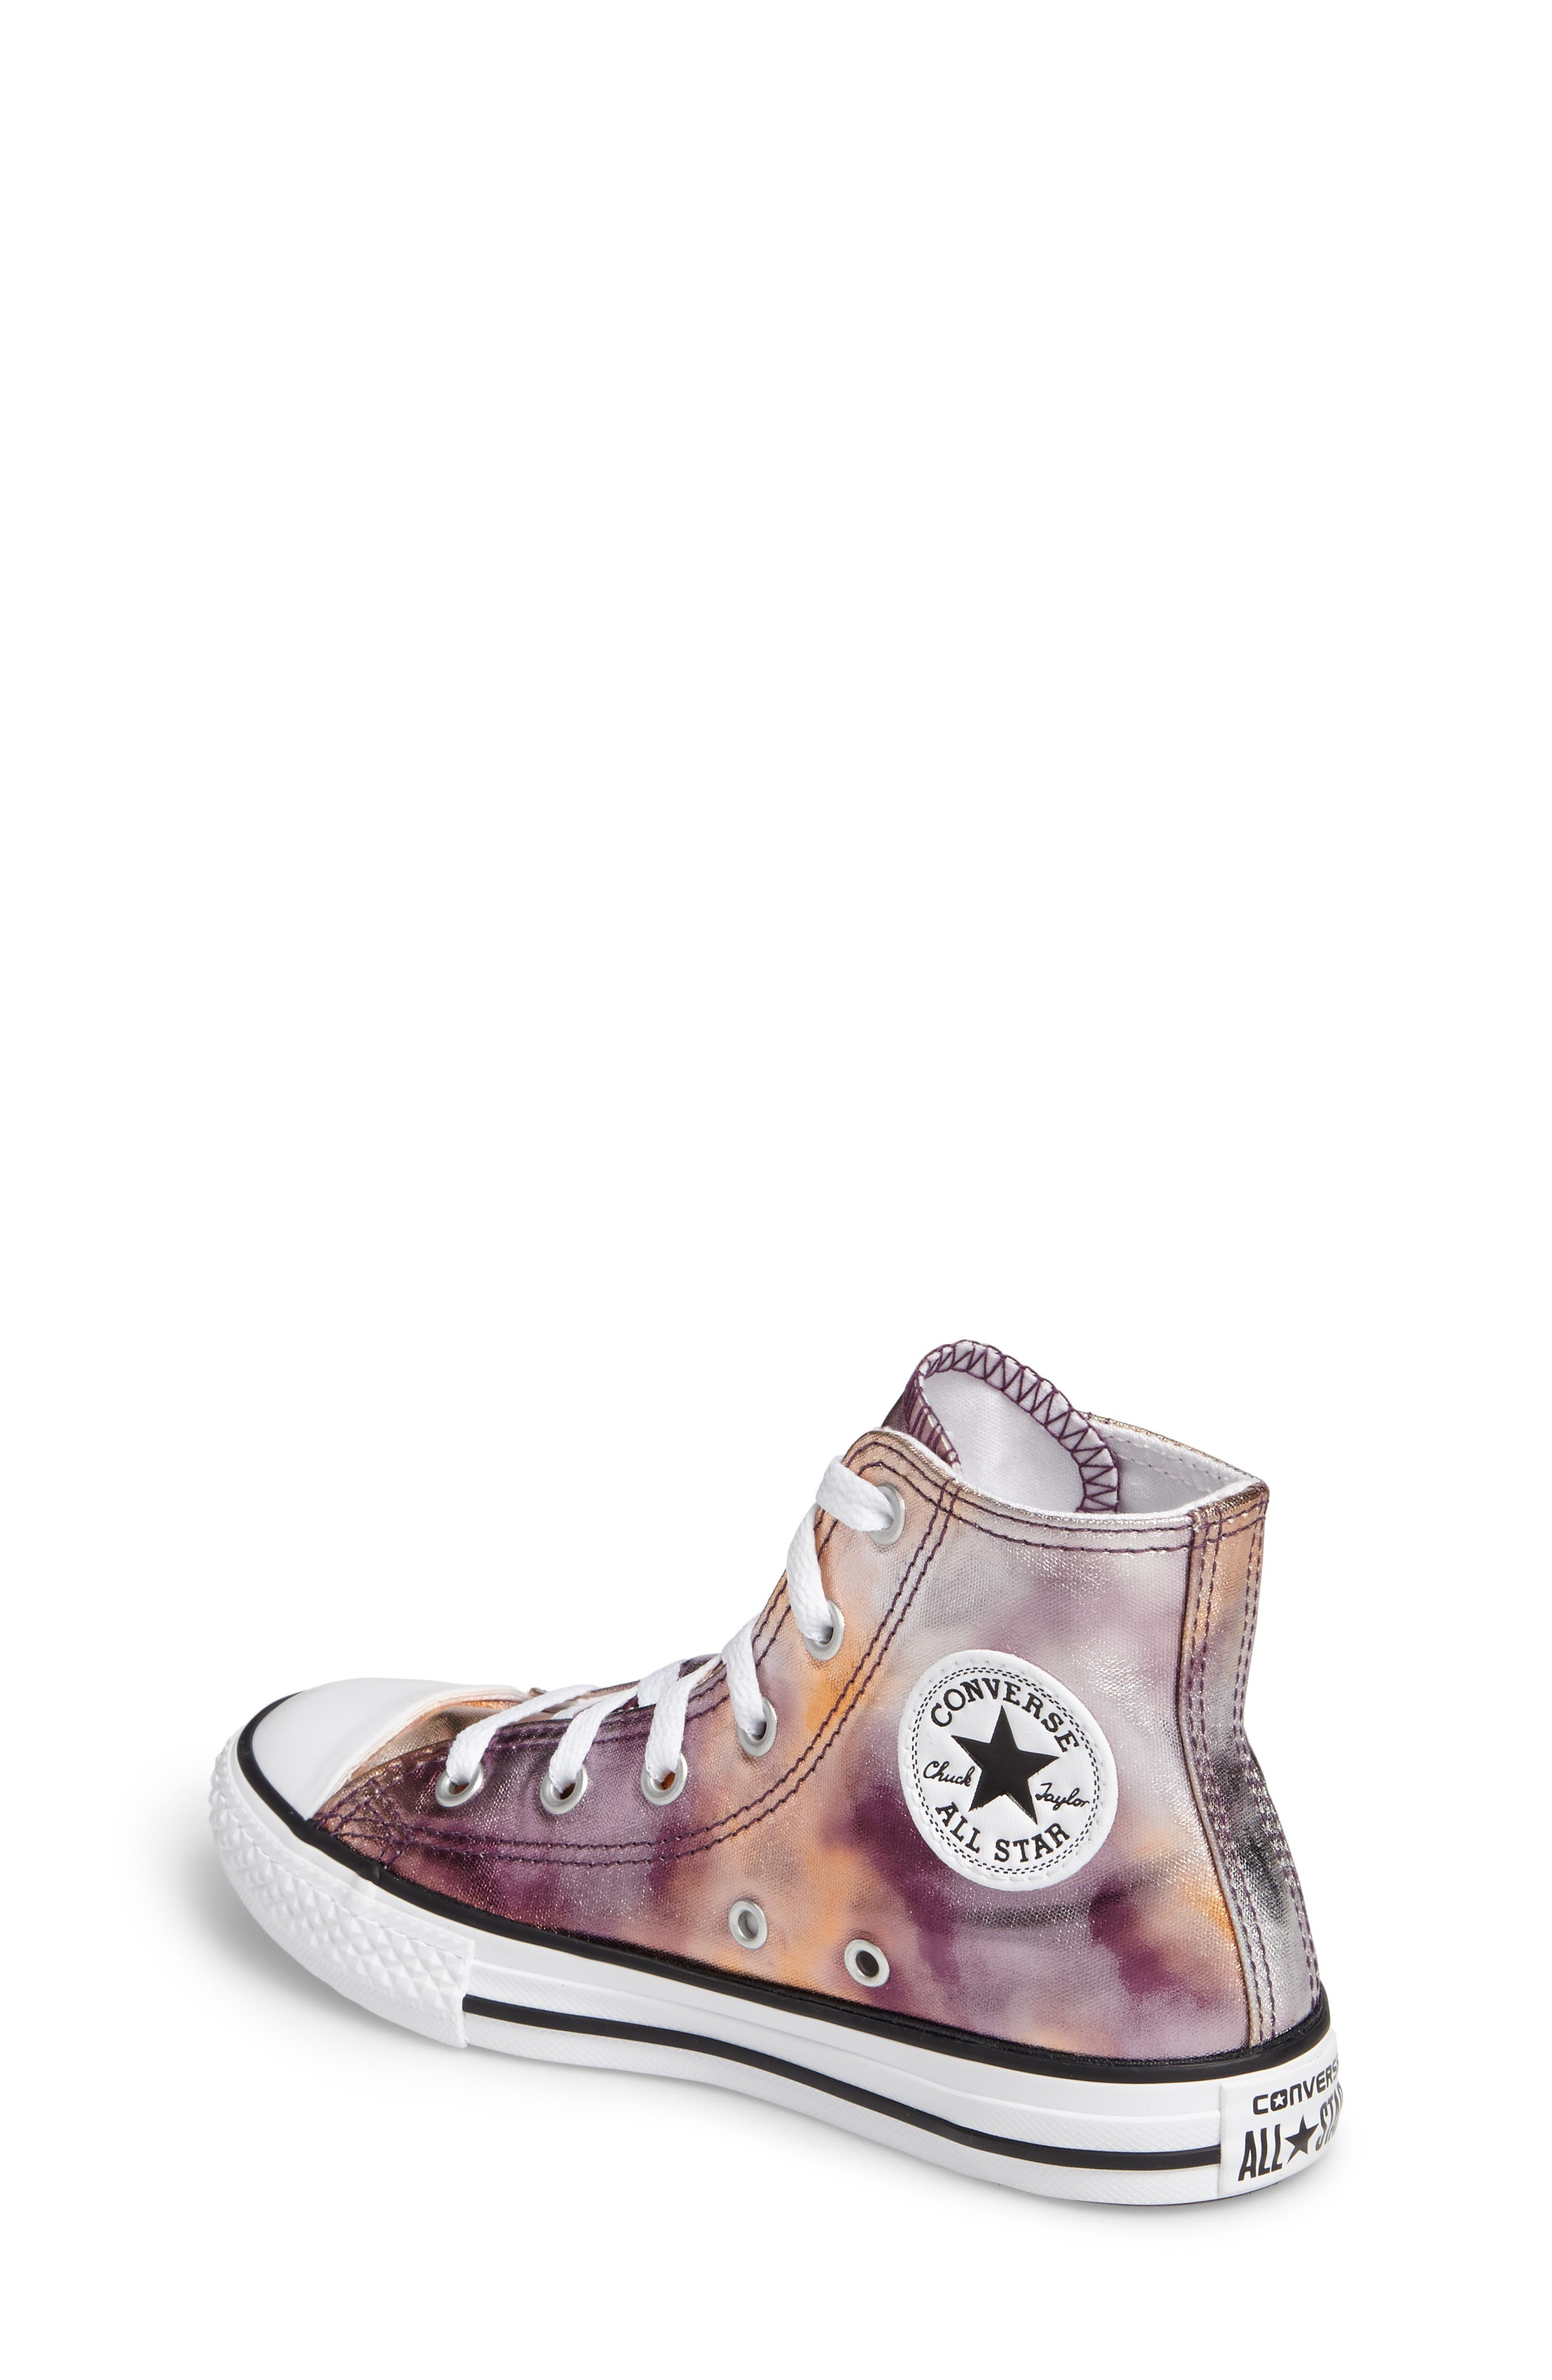 Chuck Taylor<sup>®</sup> All Star<sup>®</sup> Metallic High Top Sneaker,                             Alternate thumbnail 2, color,                             220